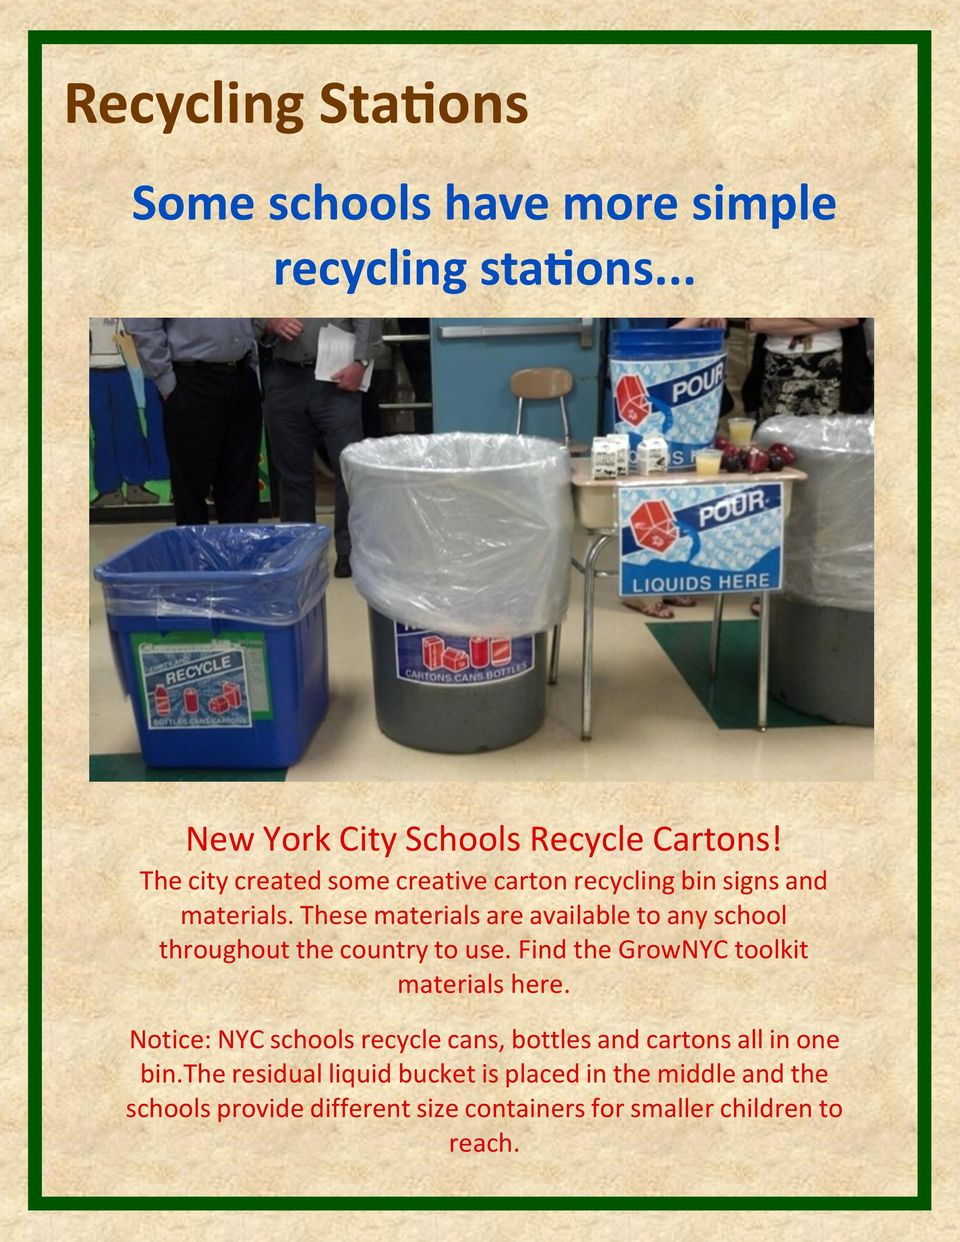 These materials are available to any school throughout the country to use. Find the GrowNYC toolkit materials here.